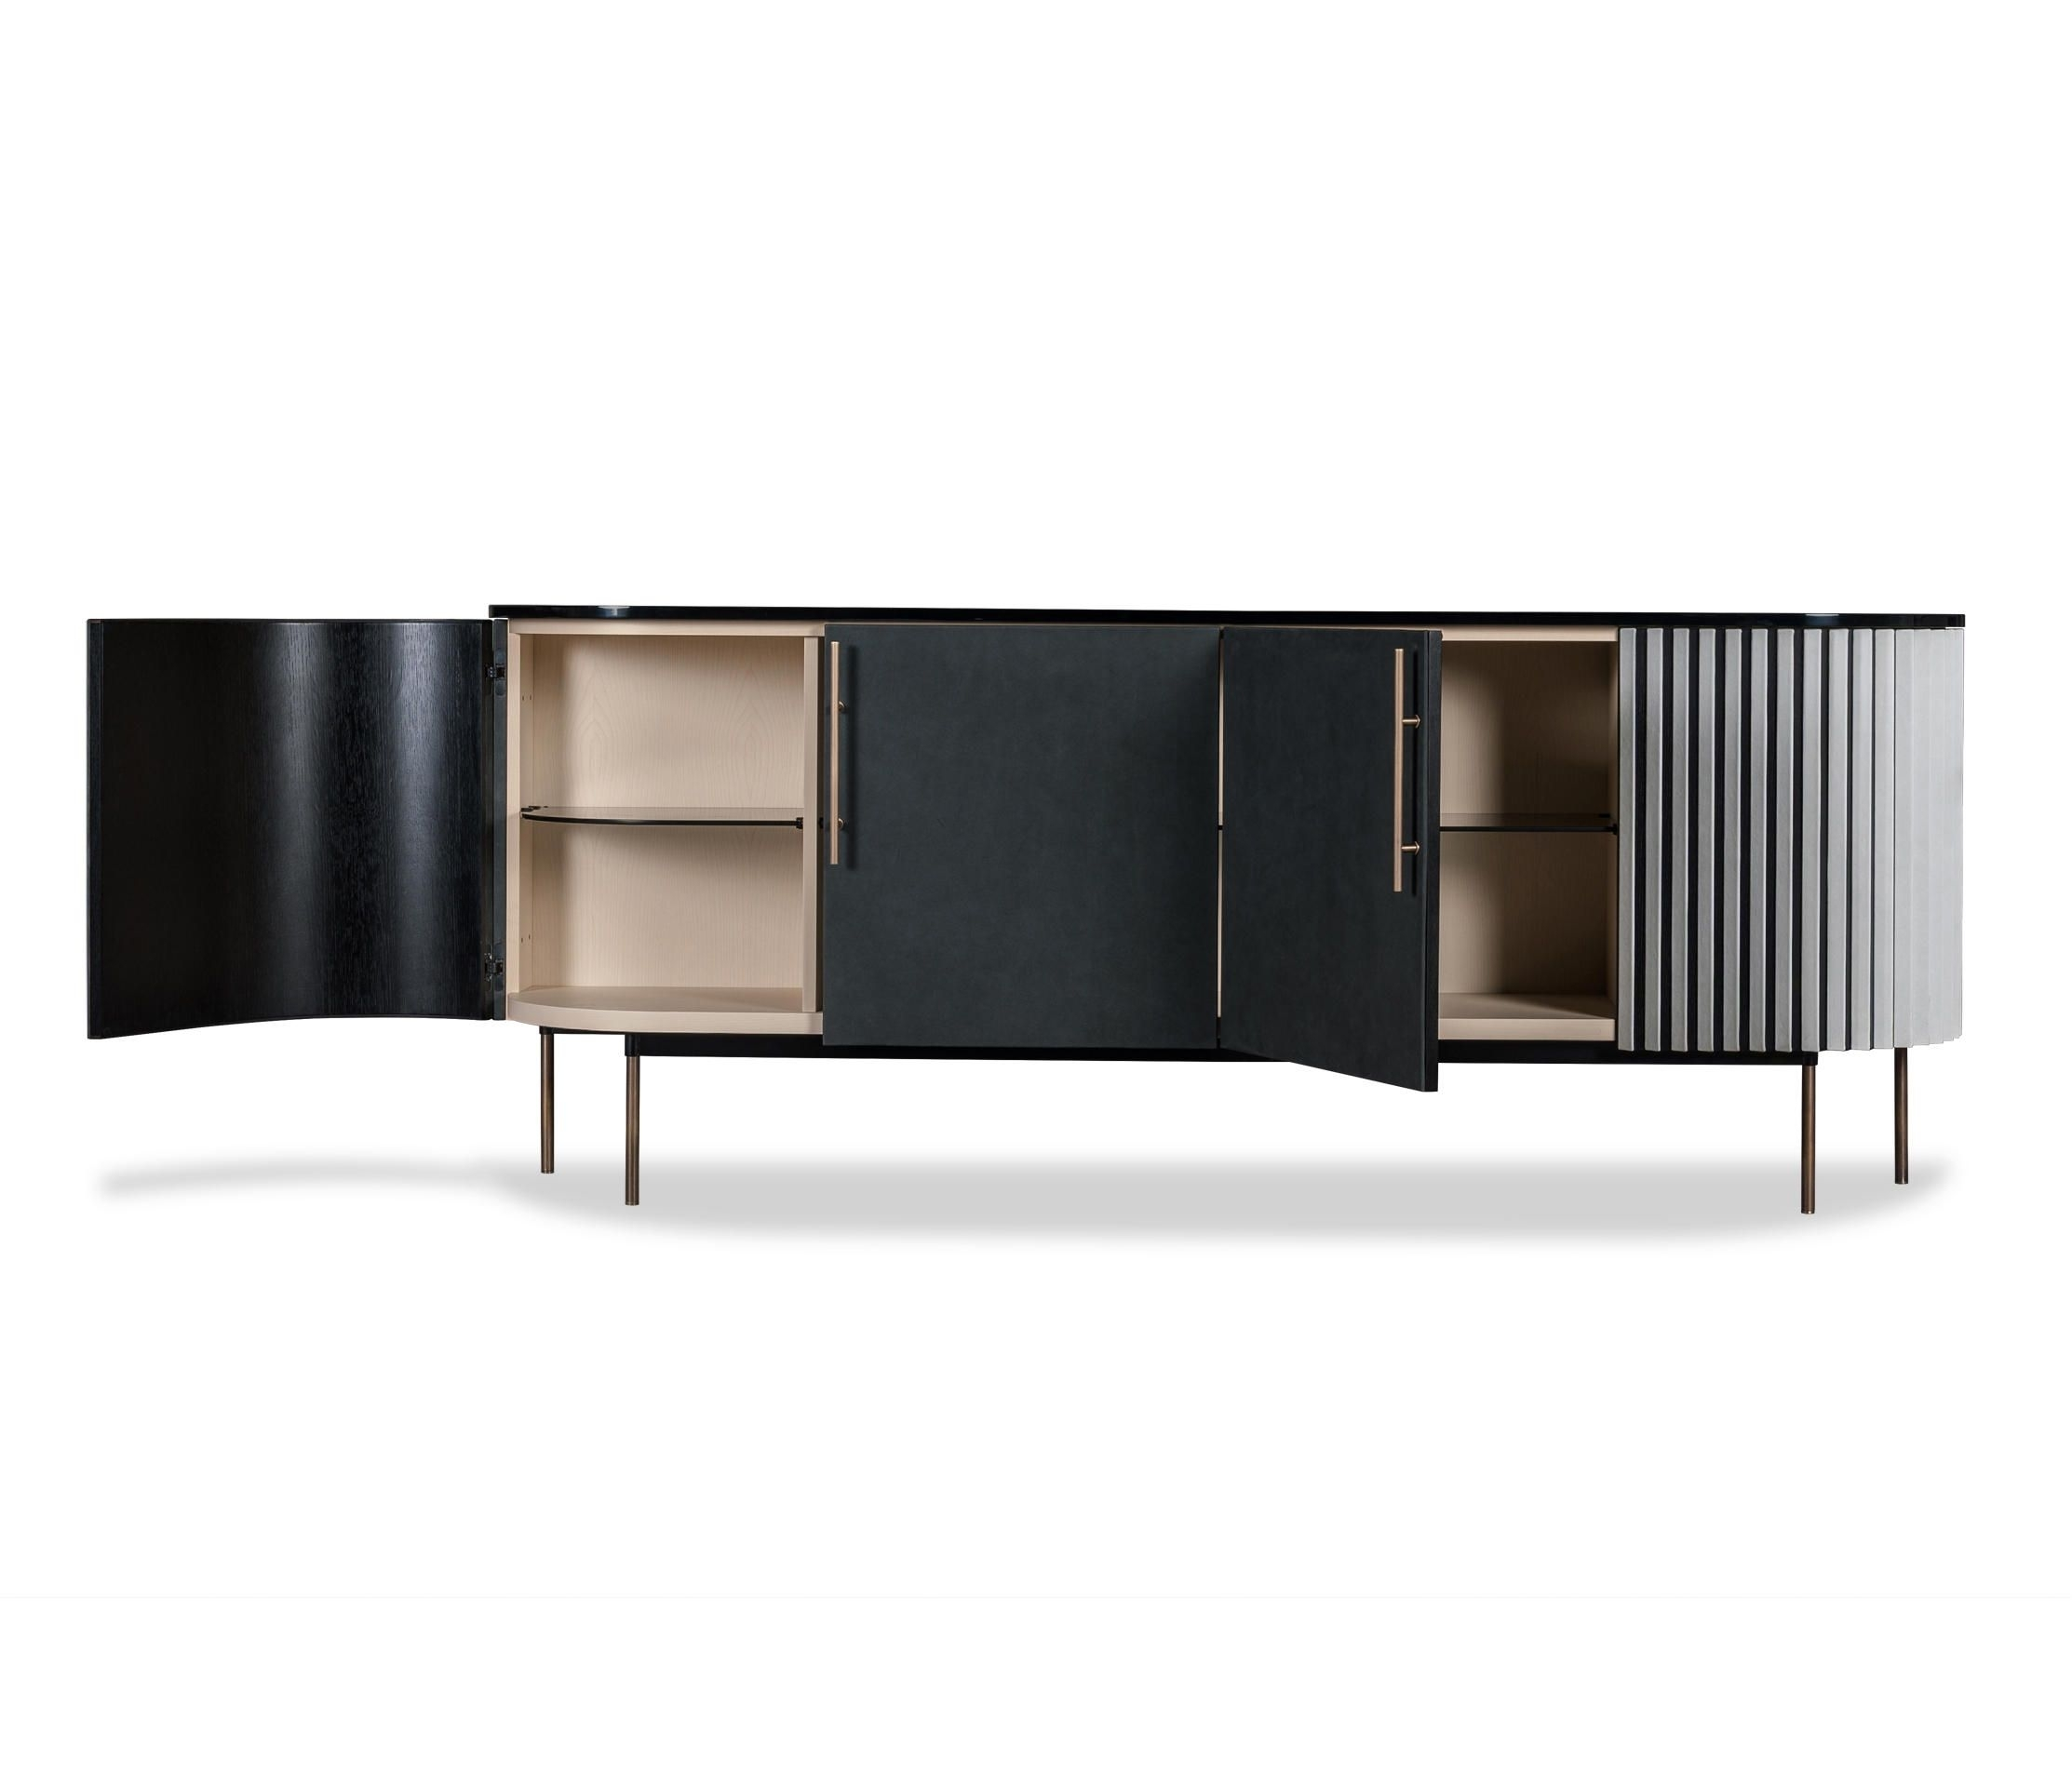 Plissé Low Cabinetbaxter | Sideboards | Furniture-Cabinet-Low within Open Shelf Brass 4-Drawer Sideboards (Image 15 of 30)